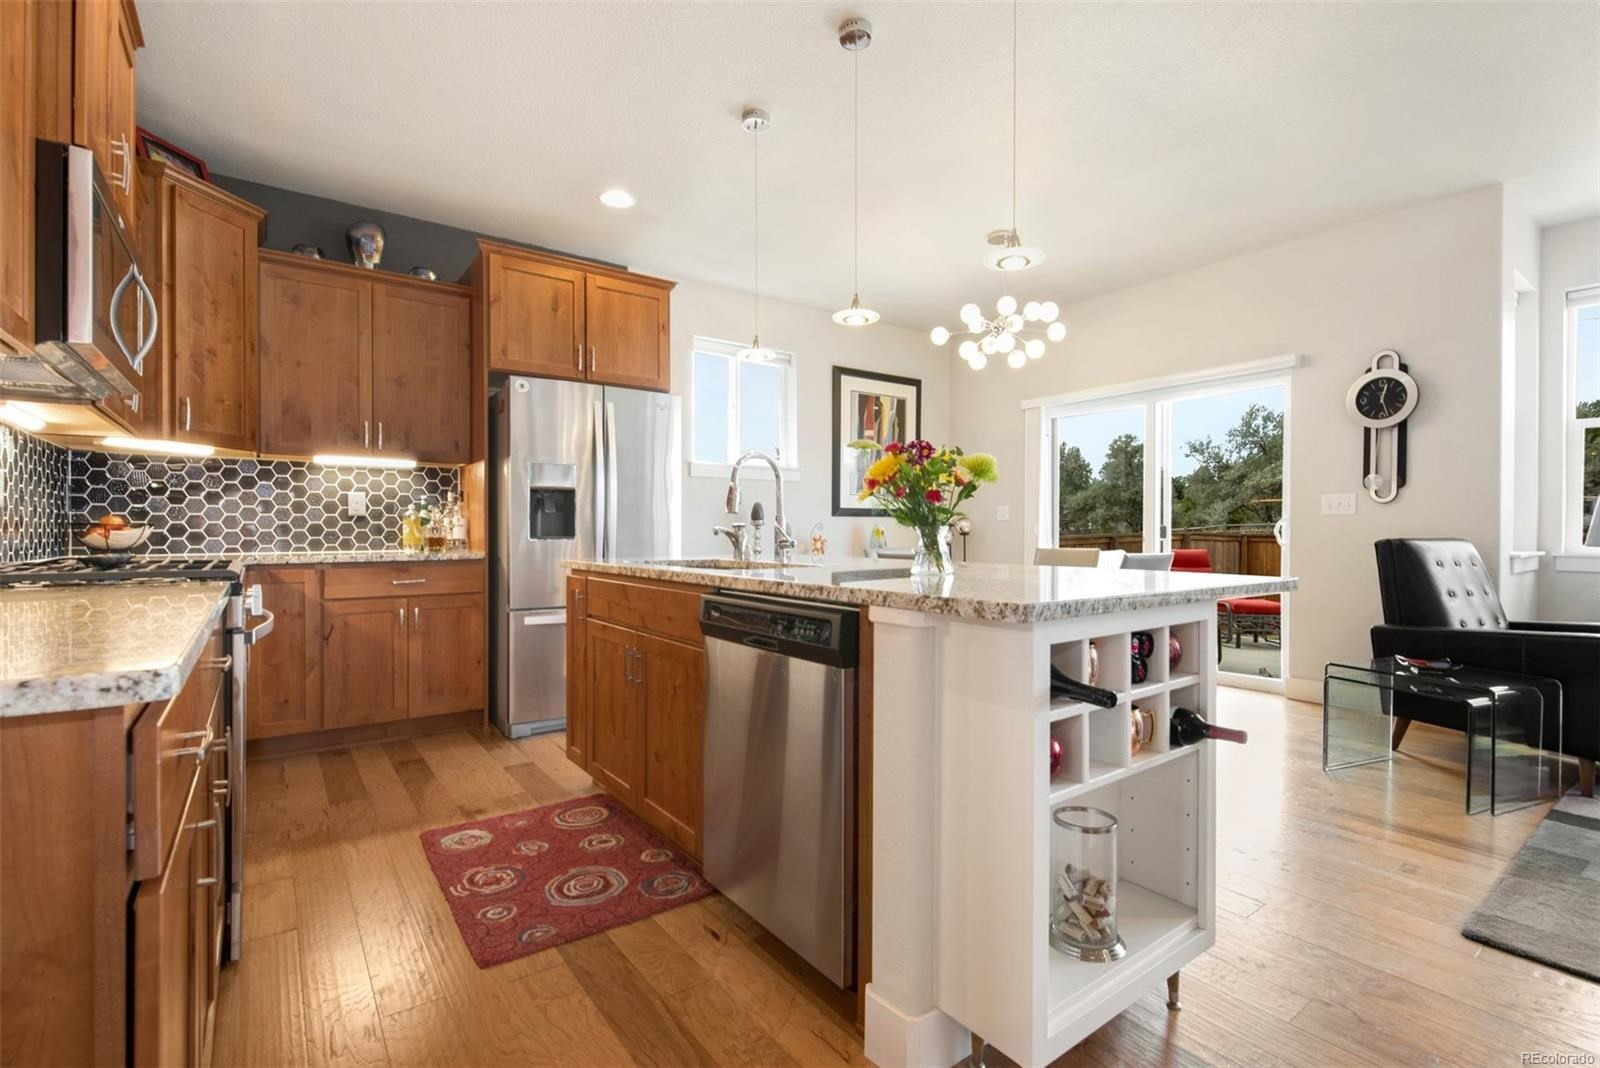 MLS# 7603789 - 8 - 2209 Adobe Drive, Fort Collins, CO 80525